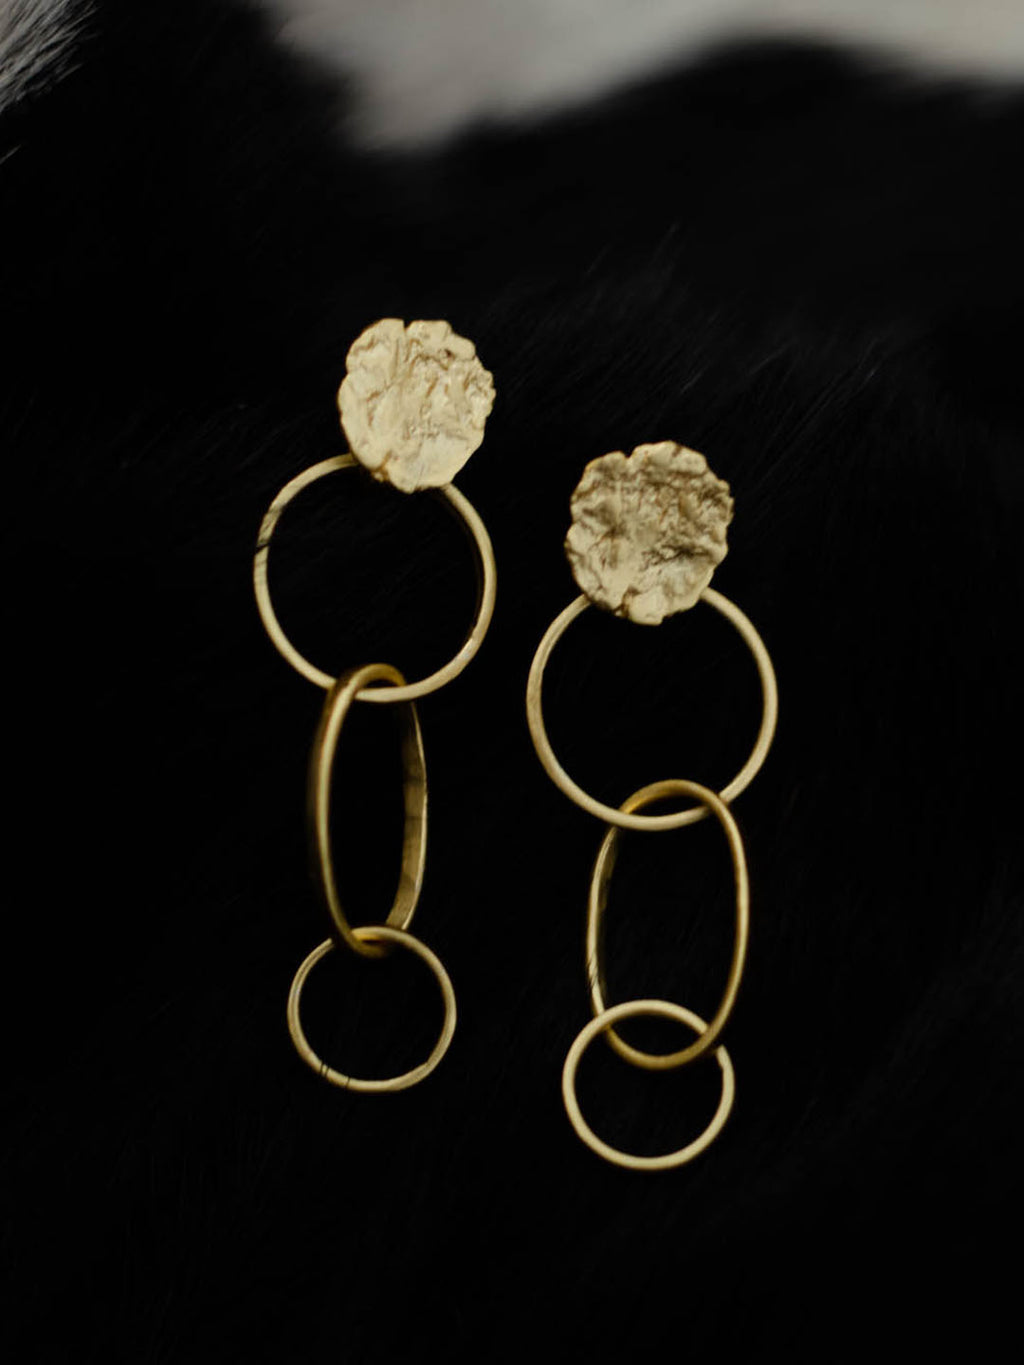 Gold Plated Chain Link Earrings